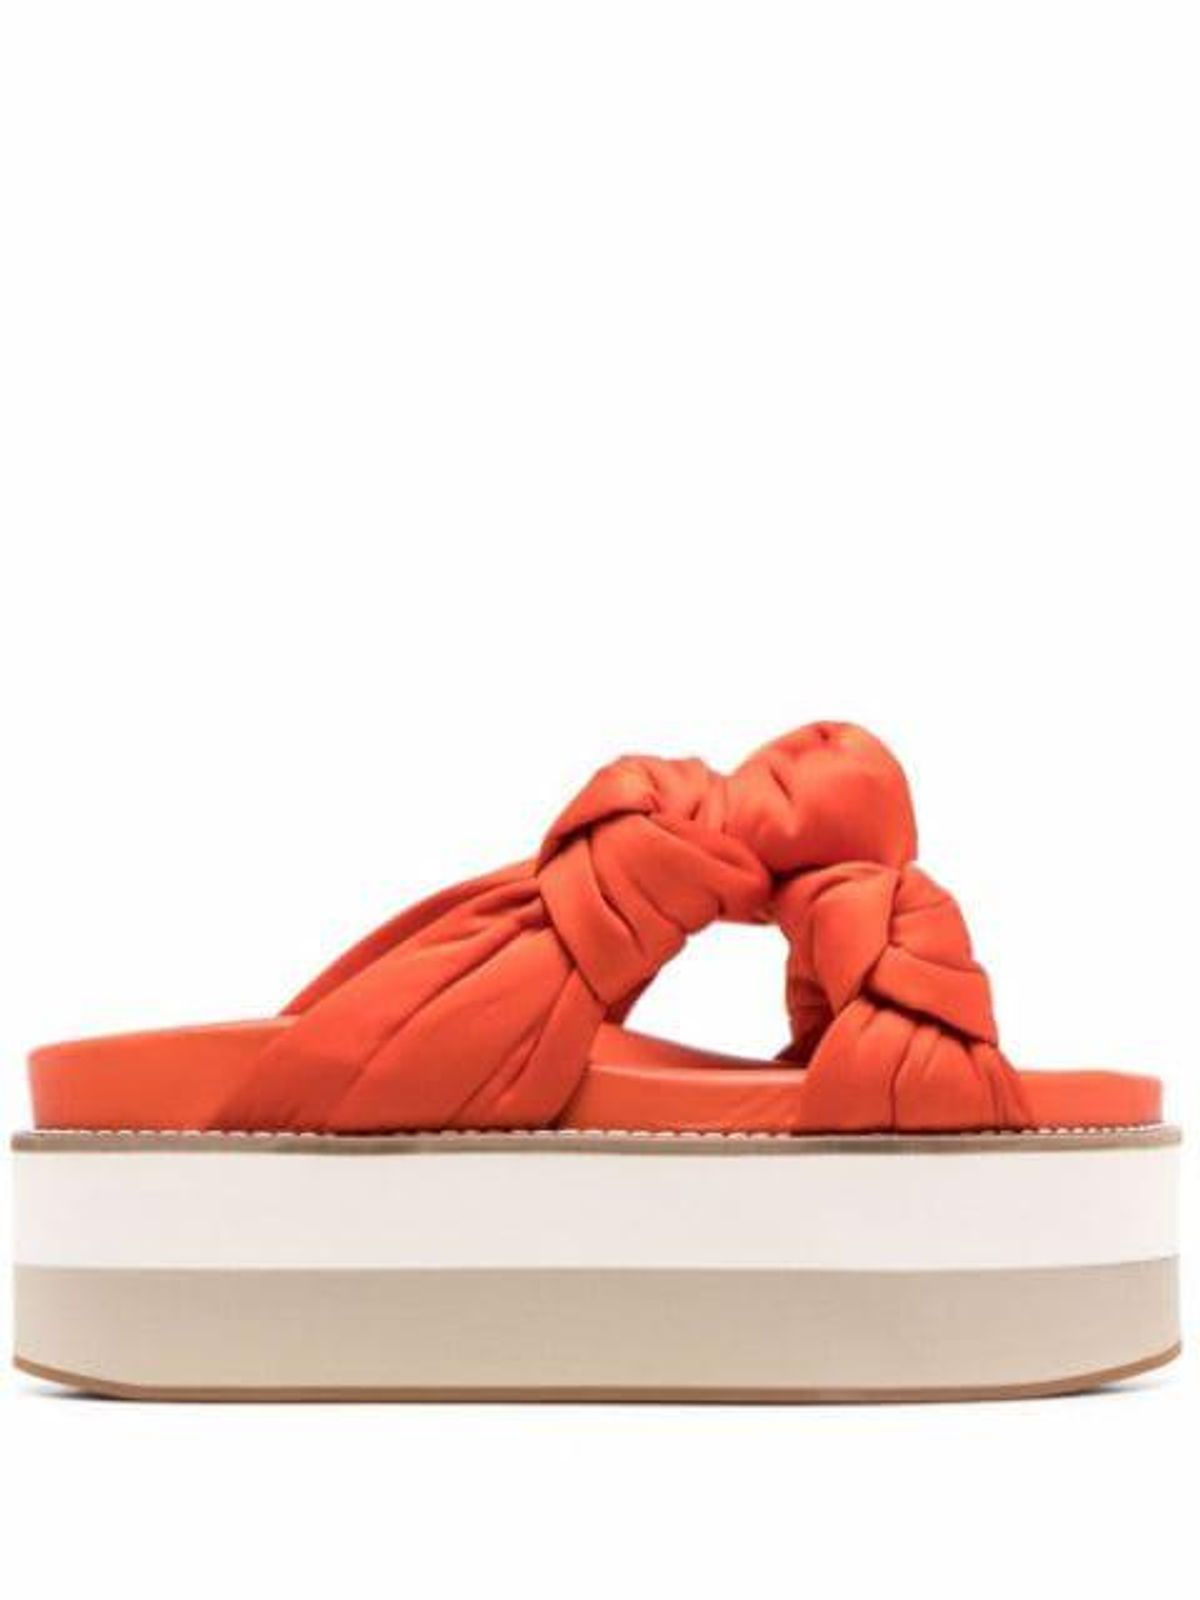 Recycled Satin Knotted Flatform Sandals